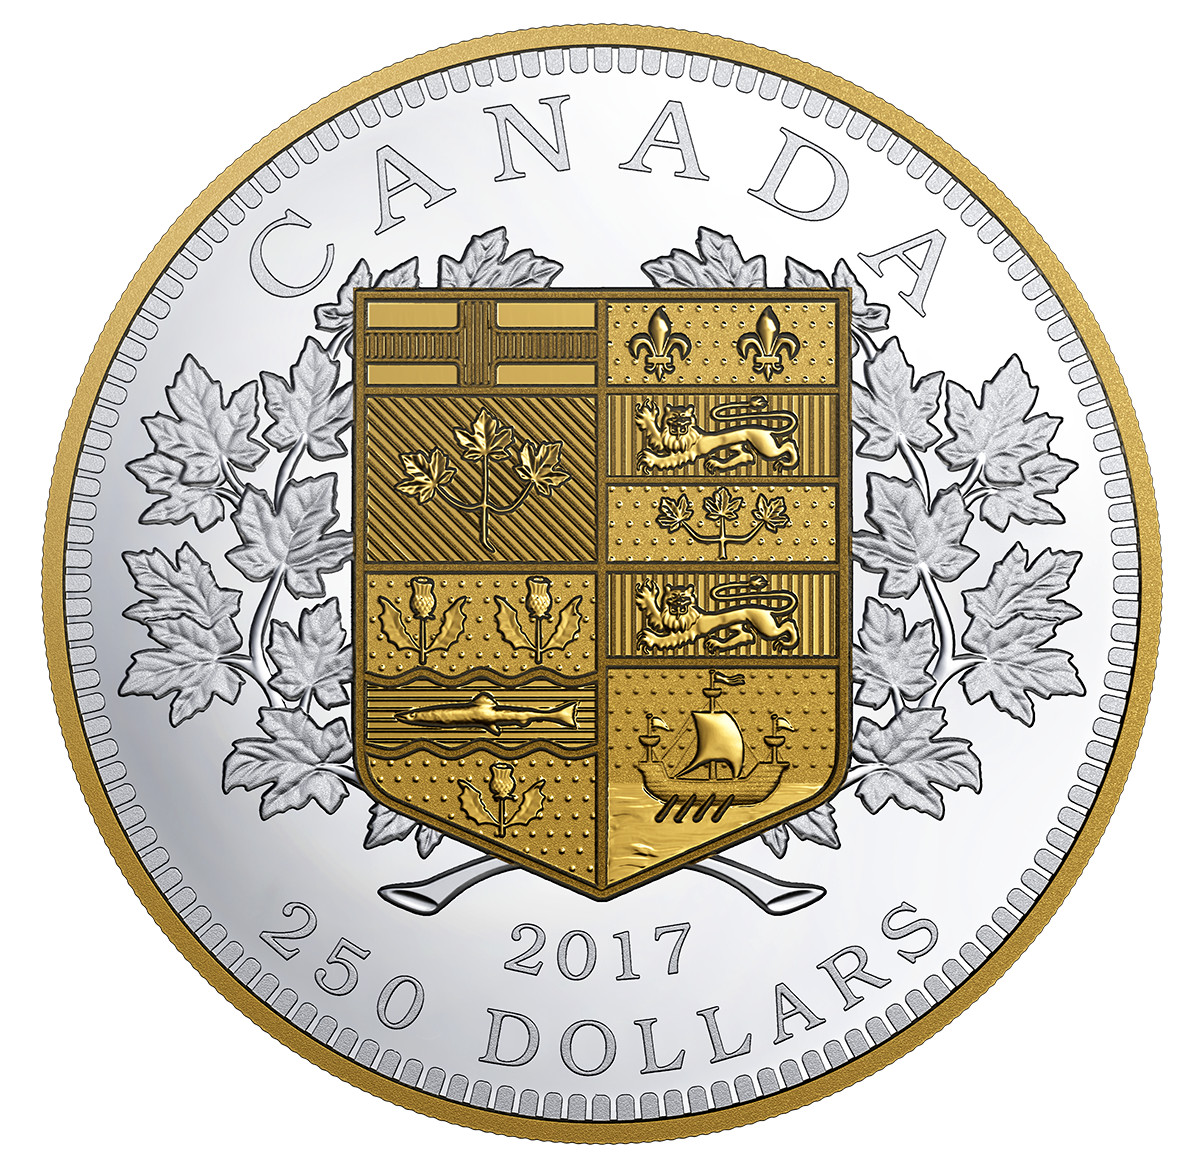 Commemorative Coins From Royal Canadian Mint For July 2017